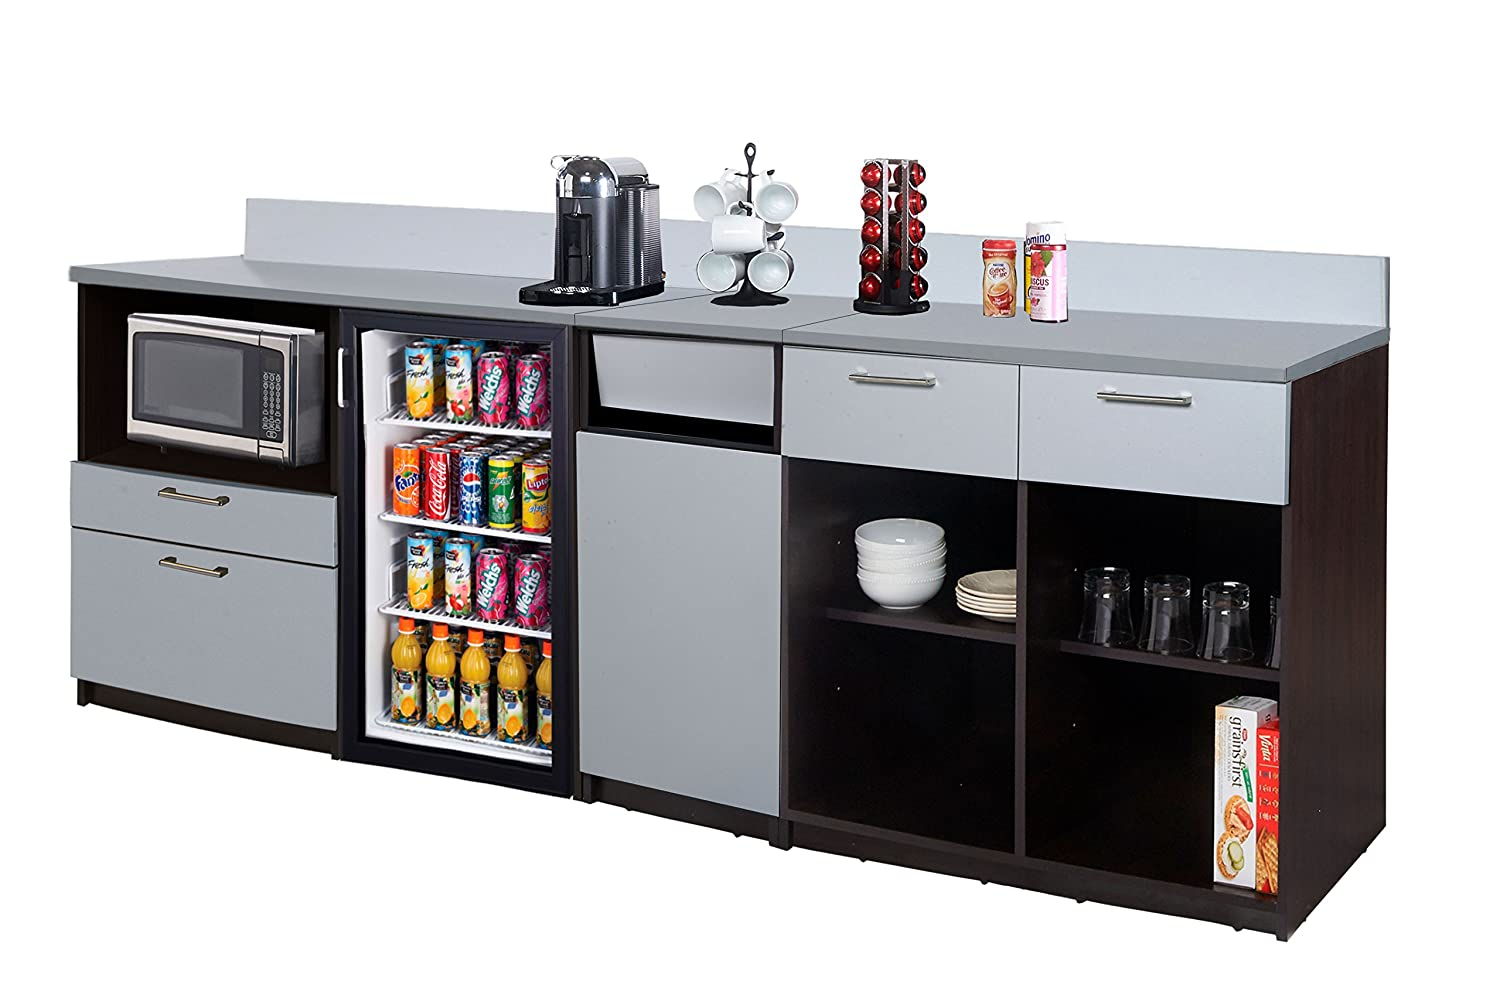 NOT RTA Coffee Kitchen Lunch Break Room Cabinets Model 4342 BREAKTIME 3 Piece Group Color Espresso Furniture Items ONLY. Factory Assembled